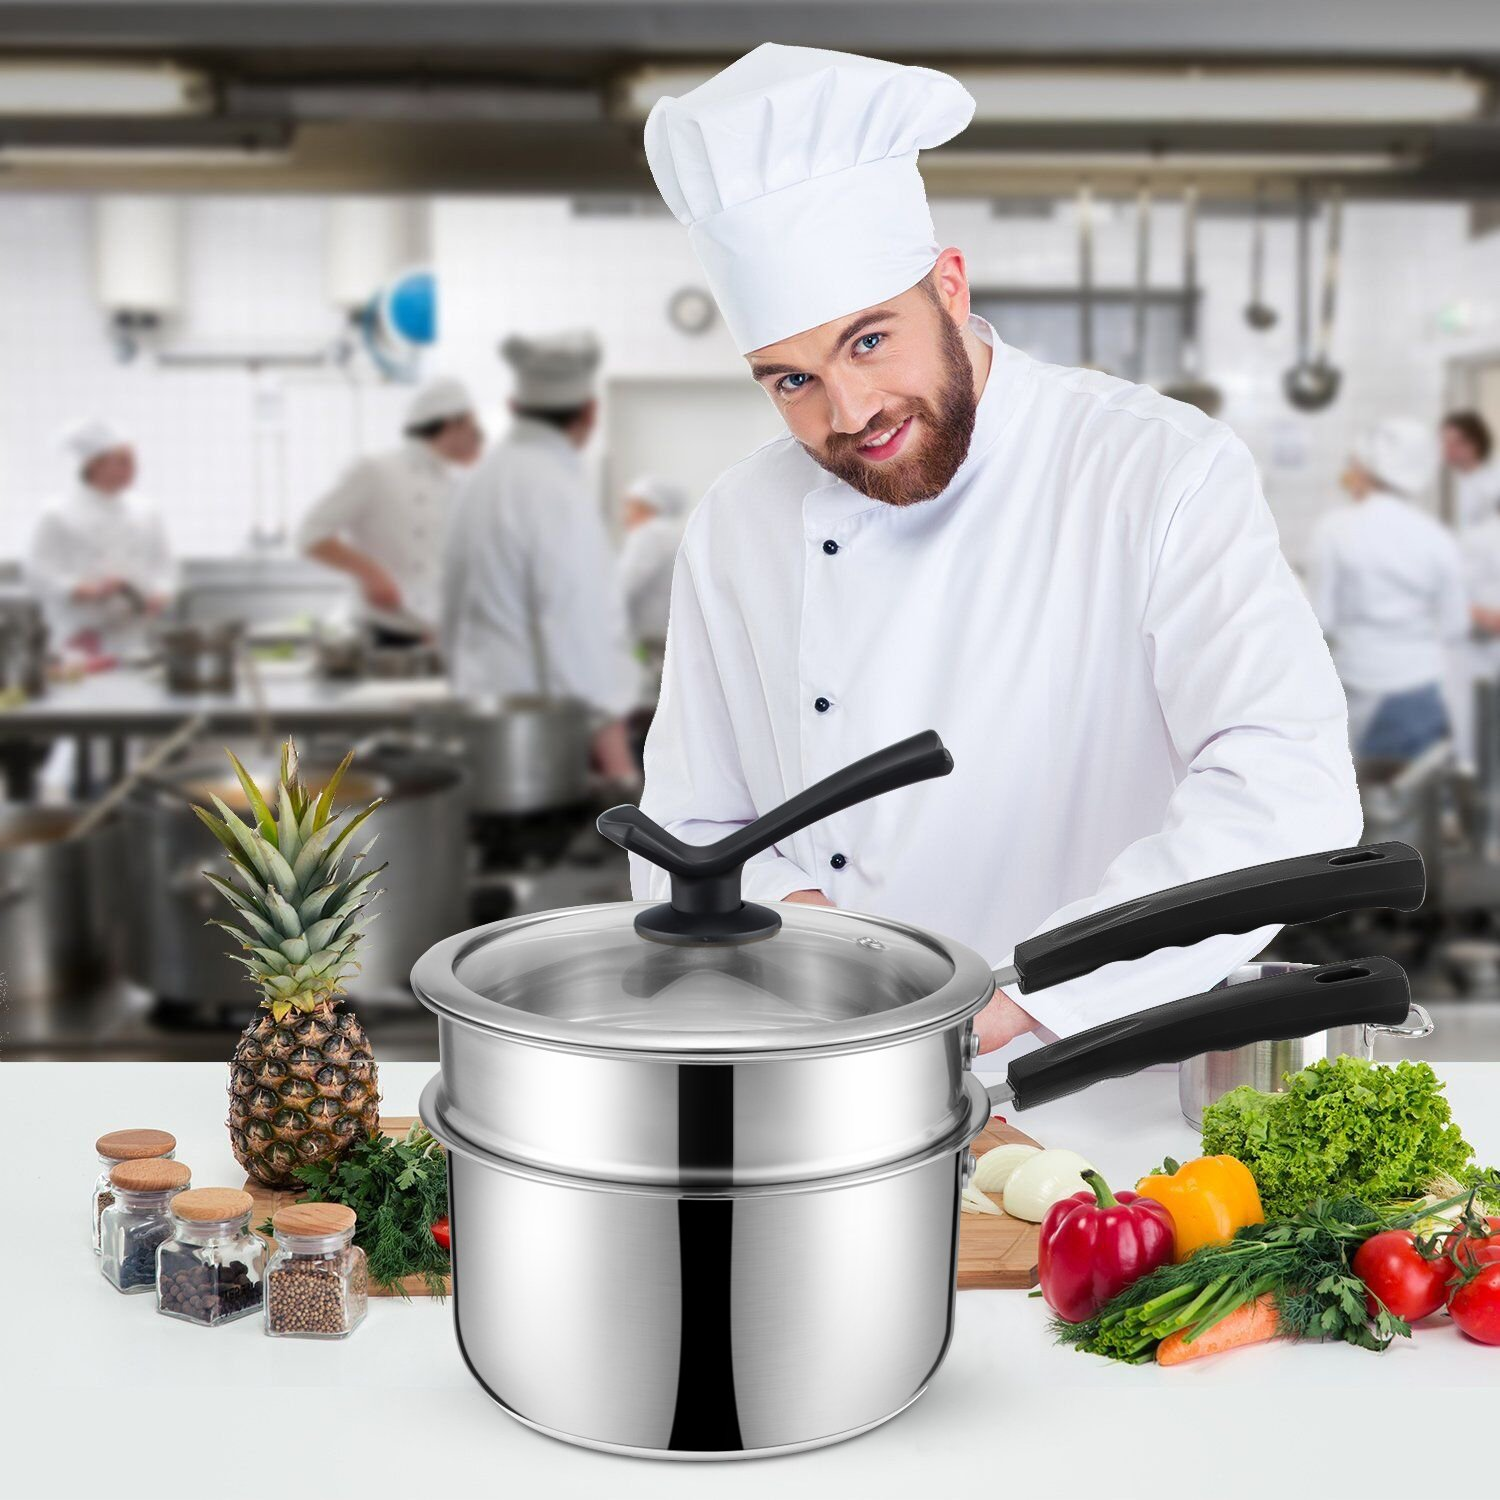 Double Boiler&Classic Stainless Steel Non-Stick Saucepan,Melting Pot for Butter,Chocolate,Cheese,Caramel and Bonus with Tempered Glass Lid by JKsmart (Image #7)